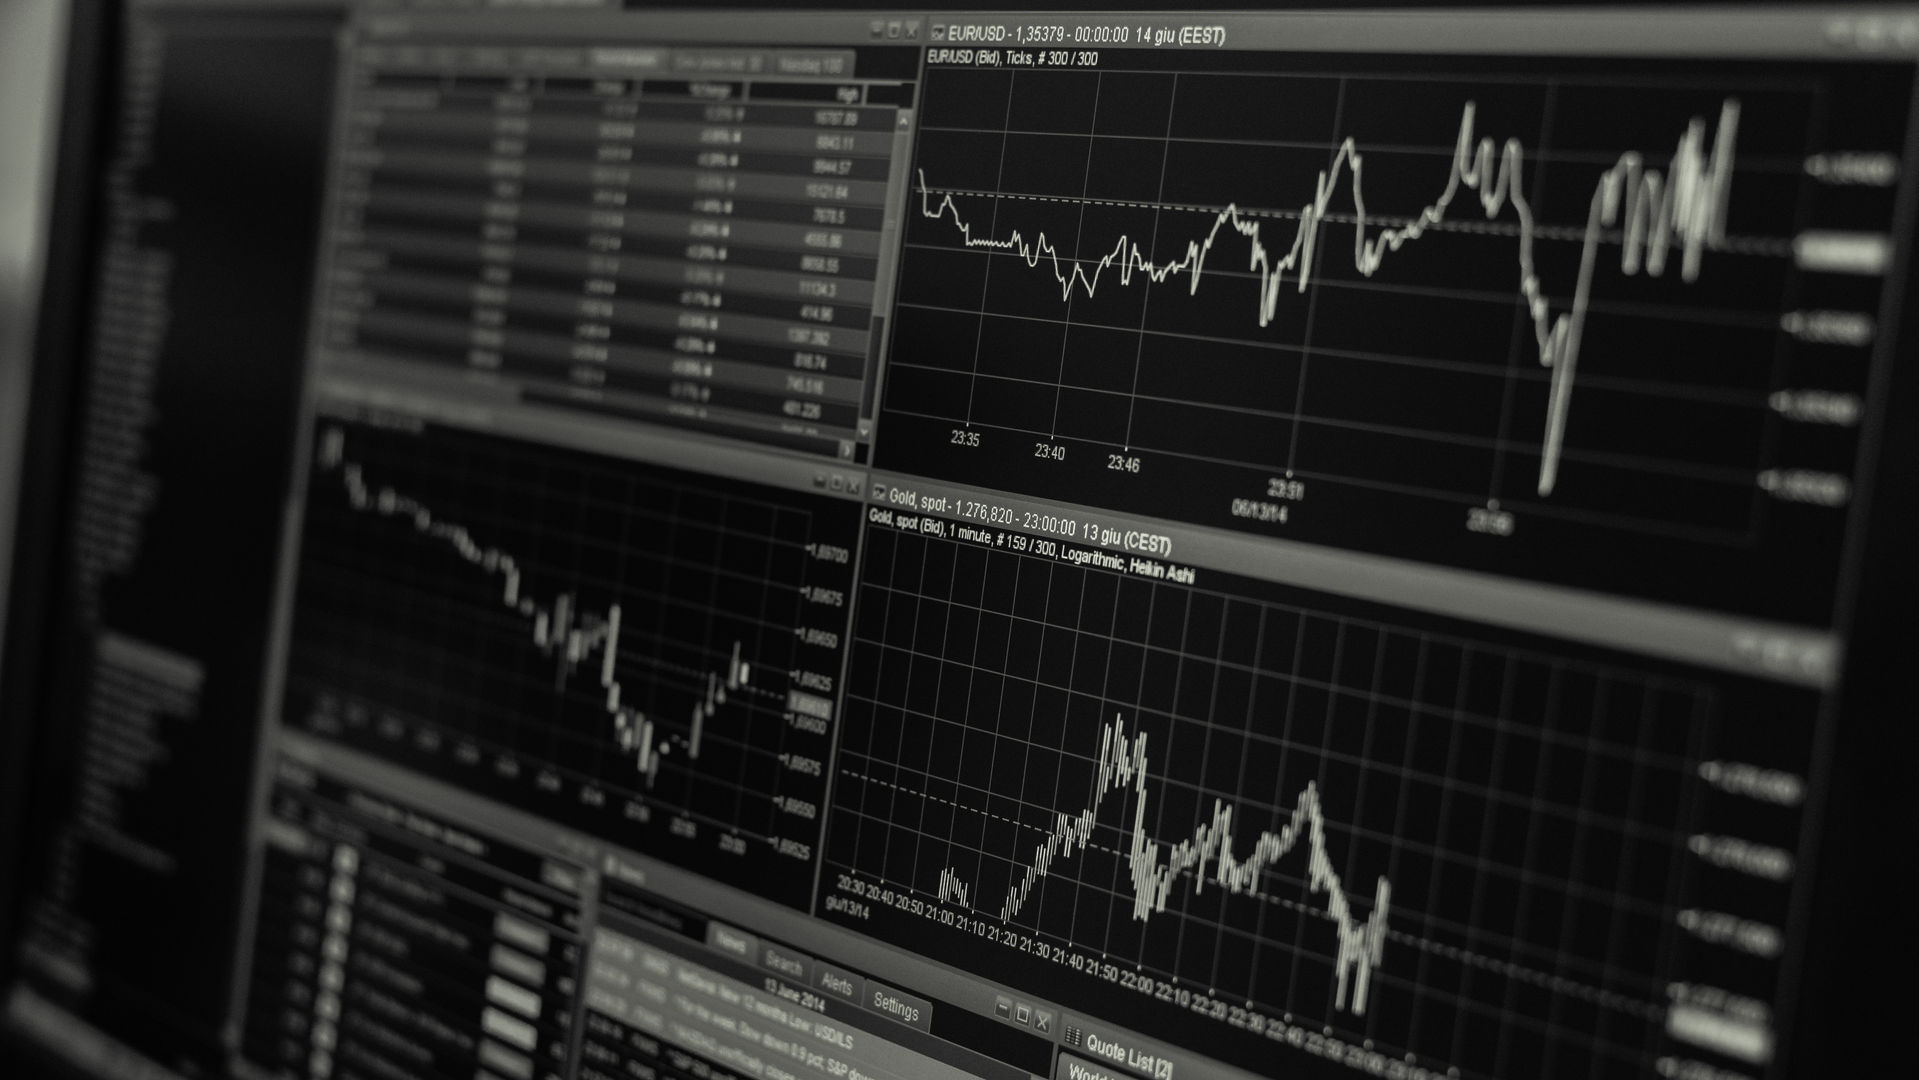 Trading Strategies for Stocks and Currencies Markets